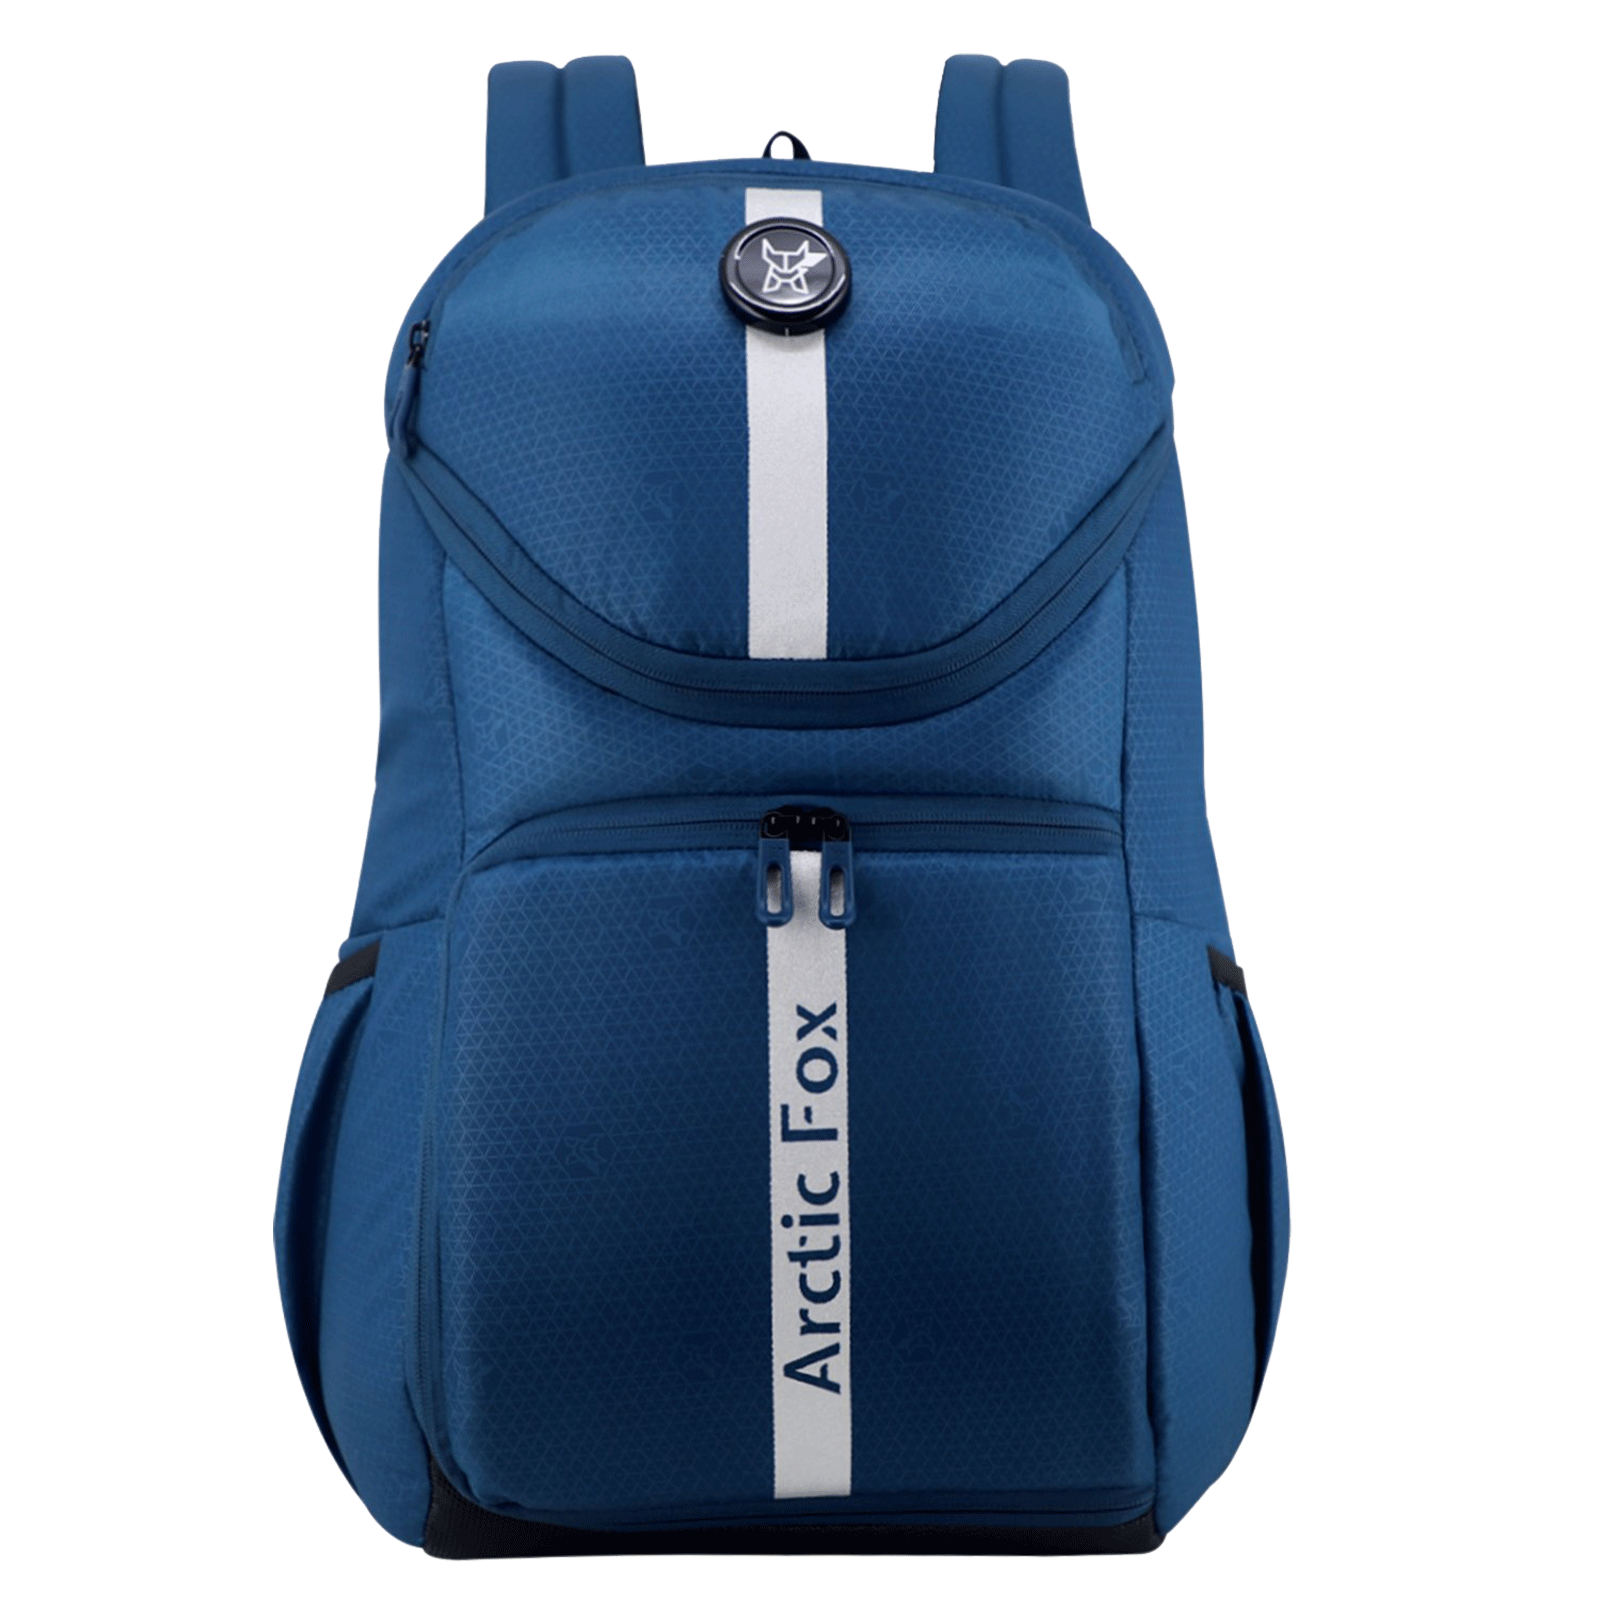 Arctic Fox Flash Polyester PU Coated Camera Backpack for Camera (15.5 Inch Laptop Compatible, FEXCMBDDVWZ131031, Deep Dive)_1